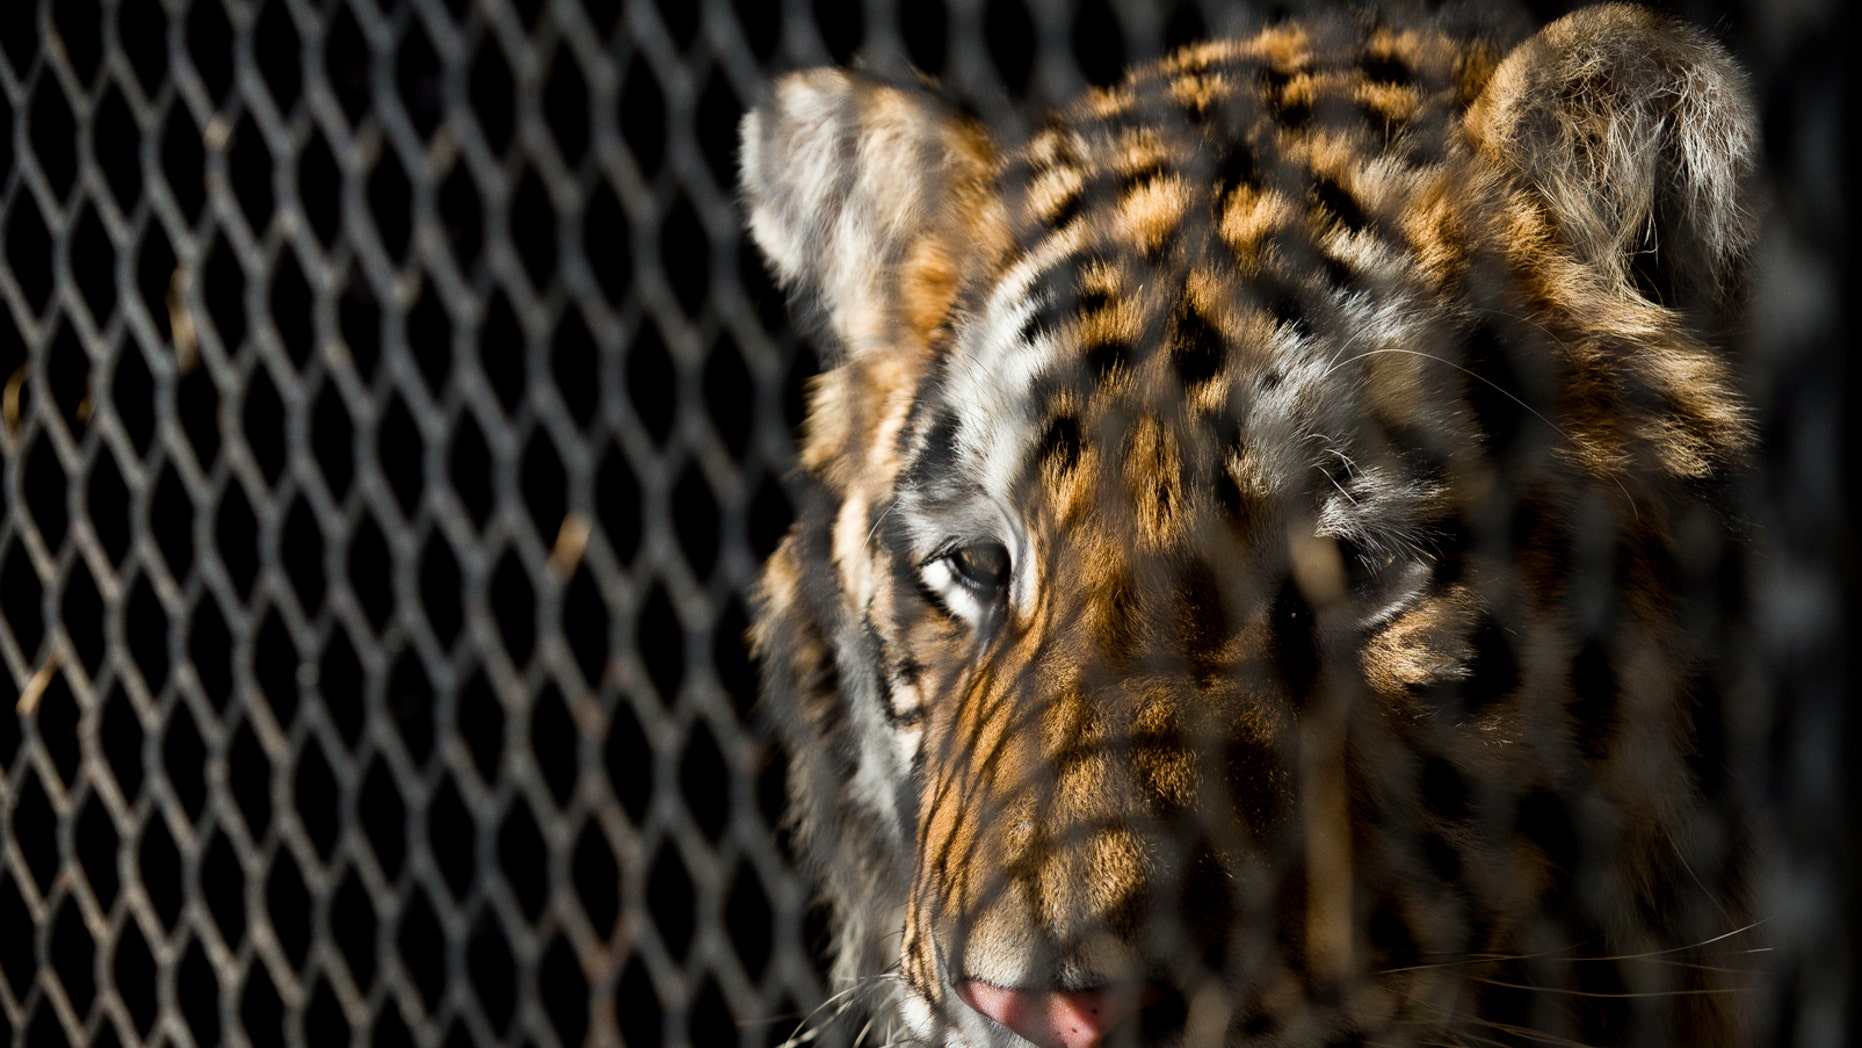 FILE - In this Feb. 12, 2019, file photo, a tiger that was found in a Southeast Houston residence awaits transport to a rescue facility at the BARC Animal Shelter and Adoptions building in Houston. The ex-owner of a tiger rescued from a filthy cage in an abandoned house in Houston has been charged with animal cruelty. Houston police, Wednesday, May 15, 2019, arrested 24-year-old Brittany Garza on the misdemeanor count involving a non-livestock animal. (Godofredo A. Vasquez/Houston Chronicle via AP, File)